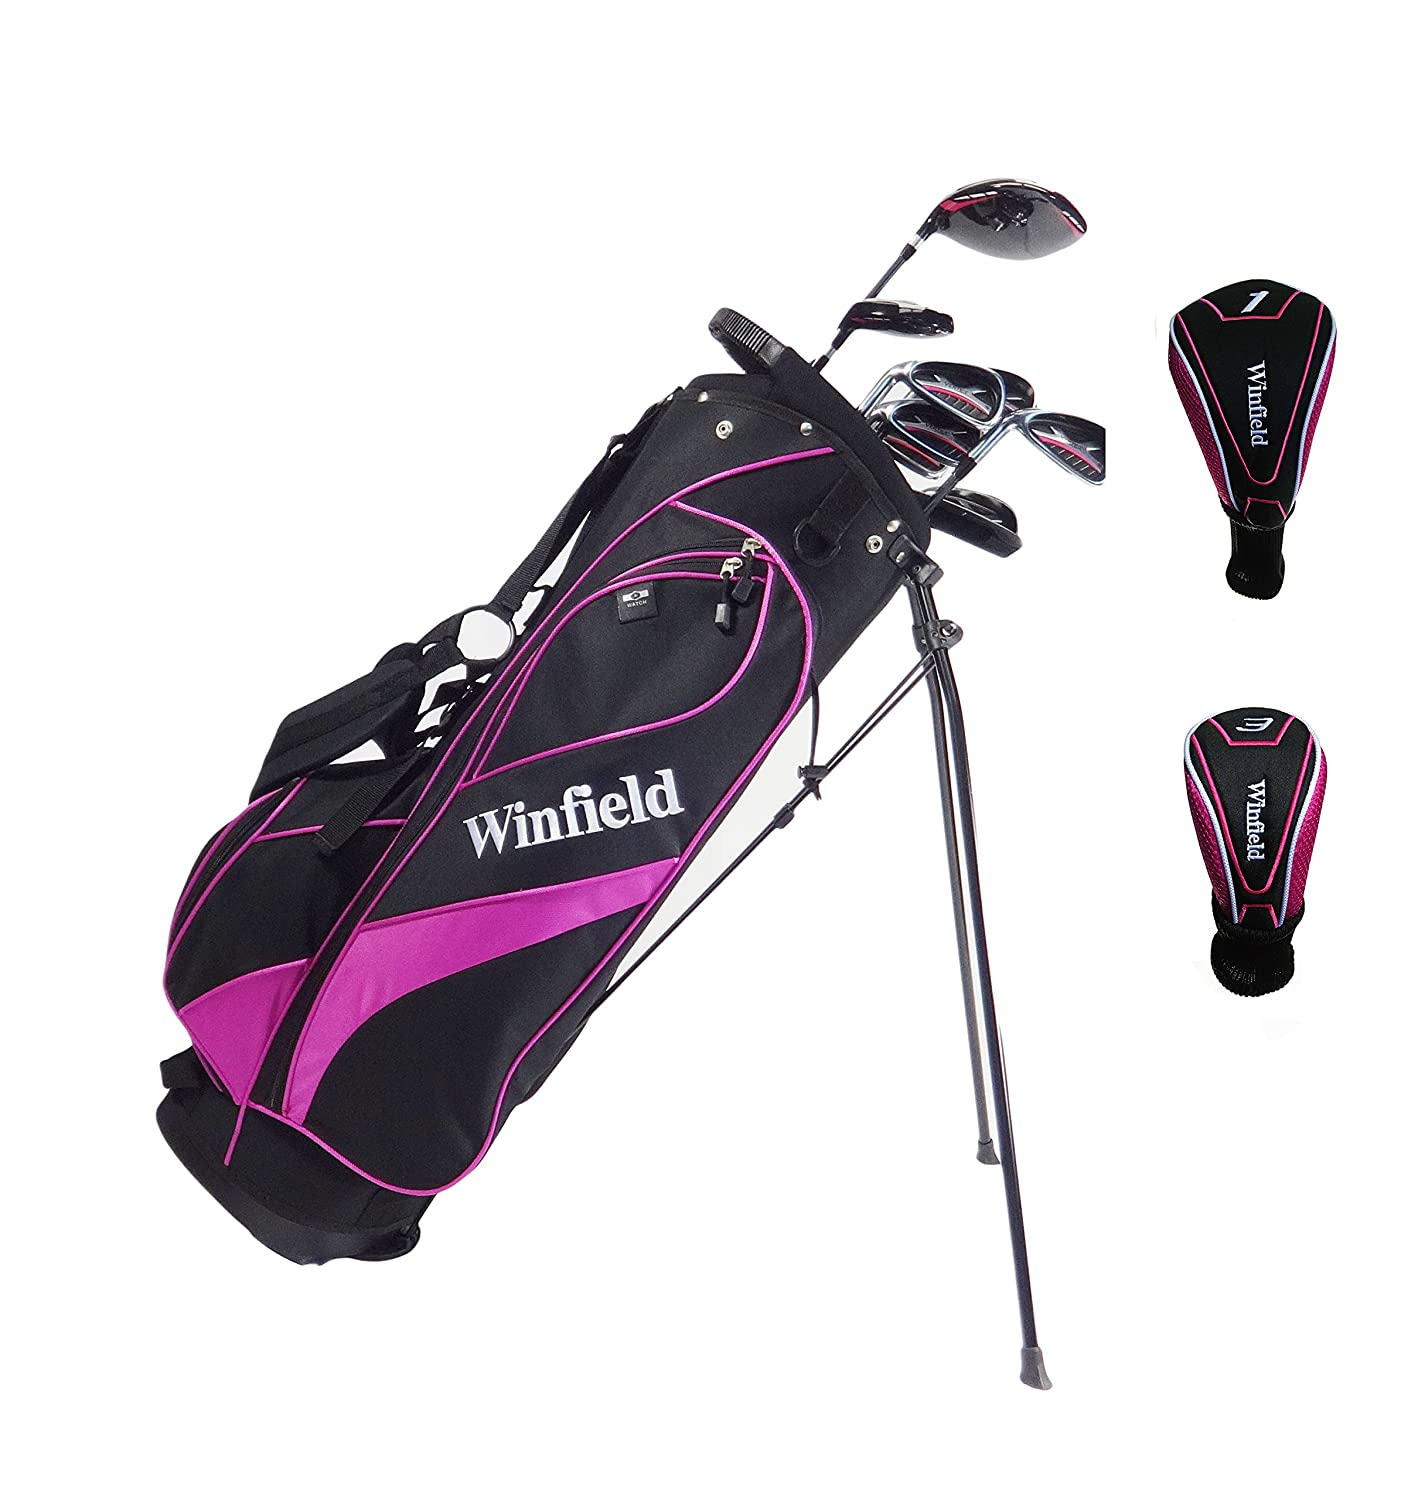 Amazon.com: Winfield Vertex Mujer de Golf Paquete All Mango ...